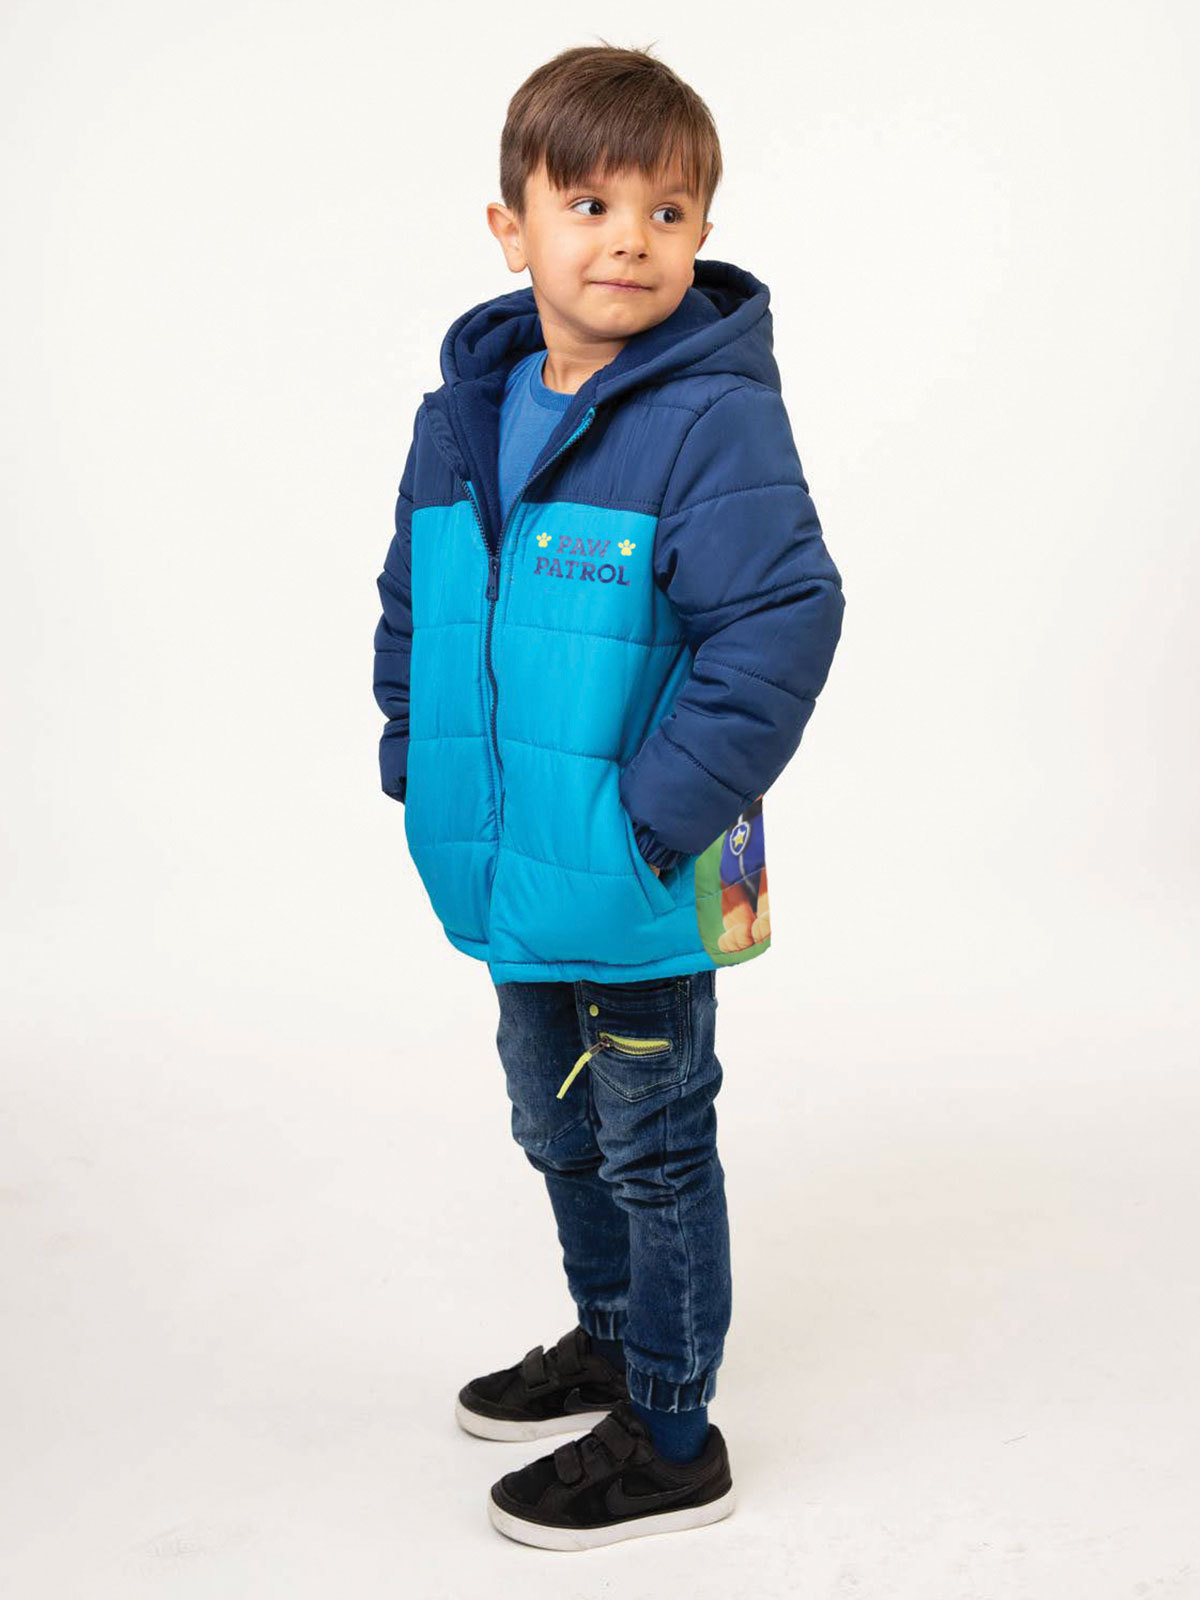 TXM BOY'S JACKET (WINTER)